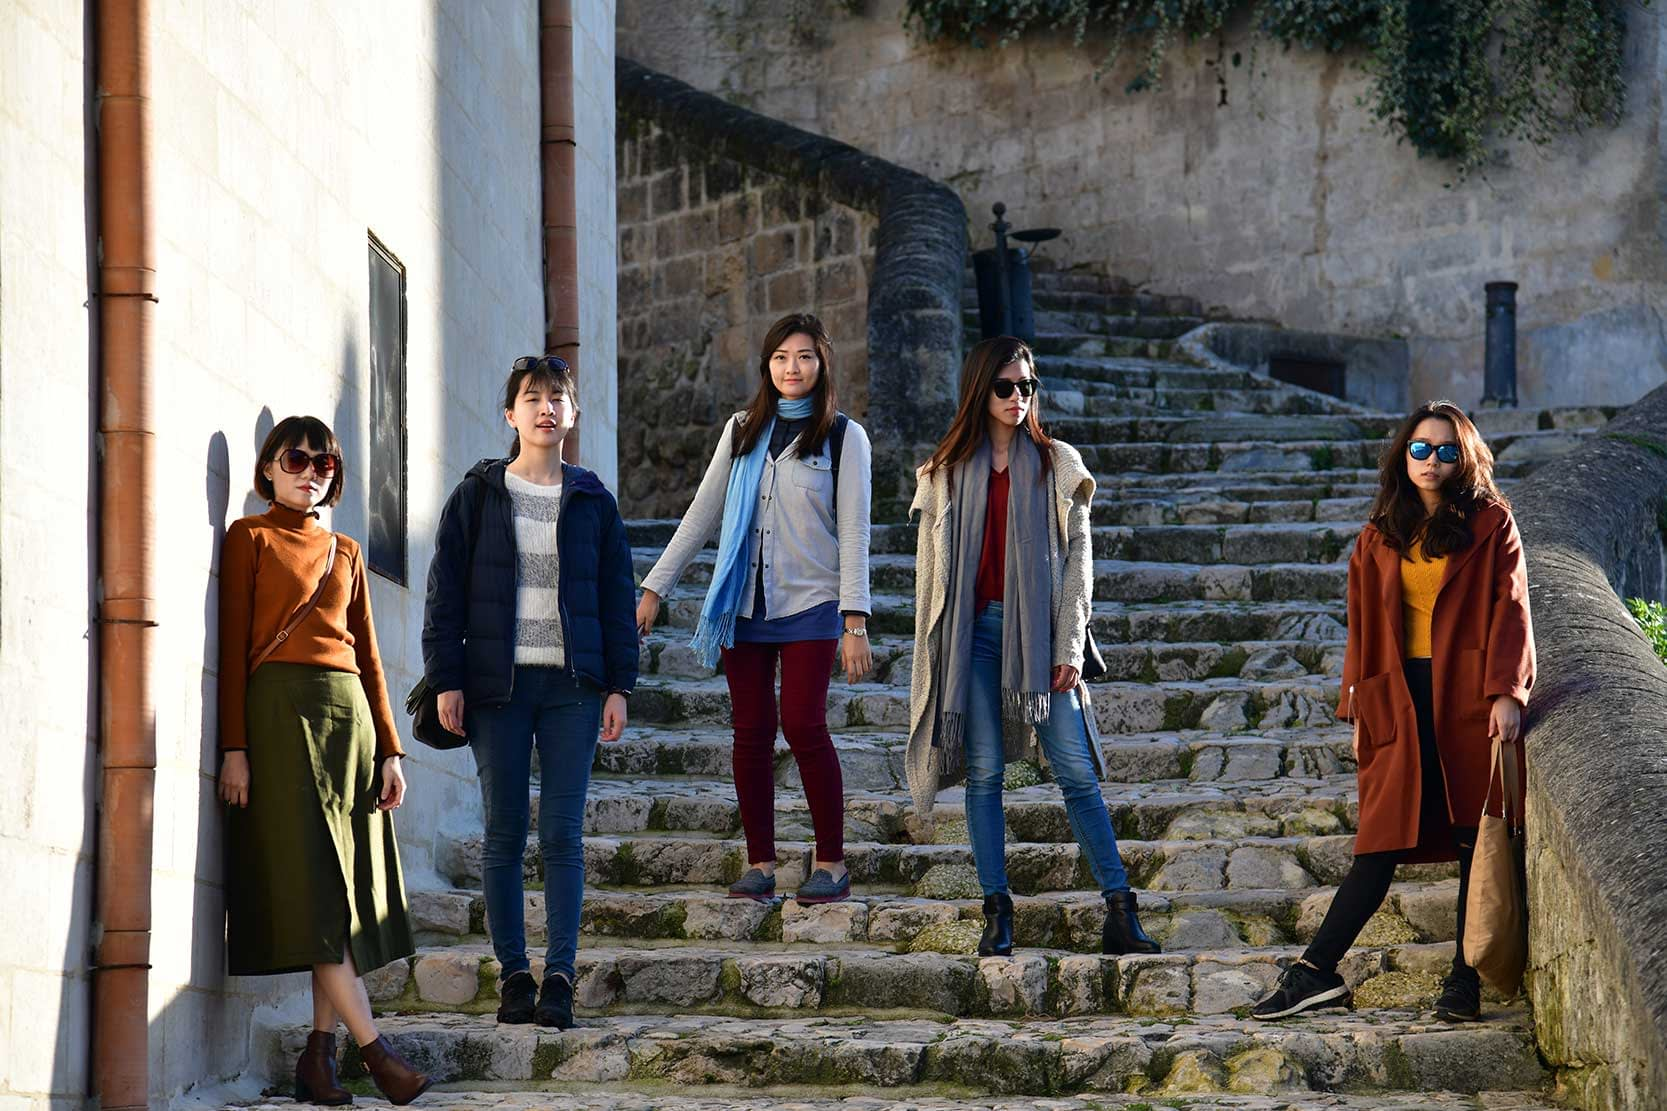 Asian friends posing as fashion models in Italy